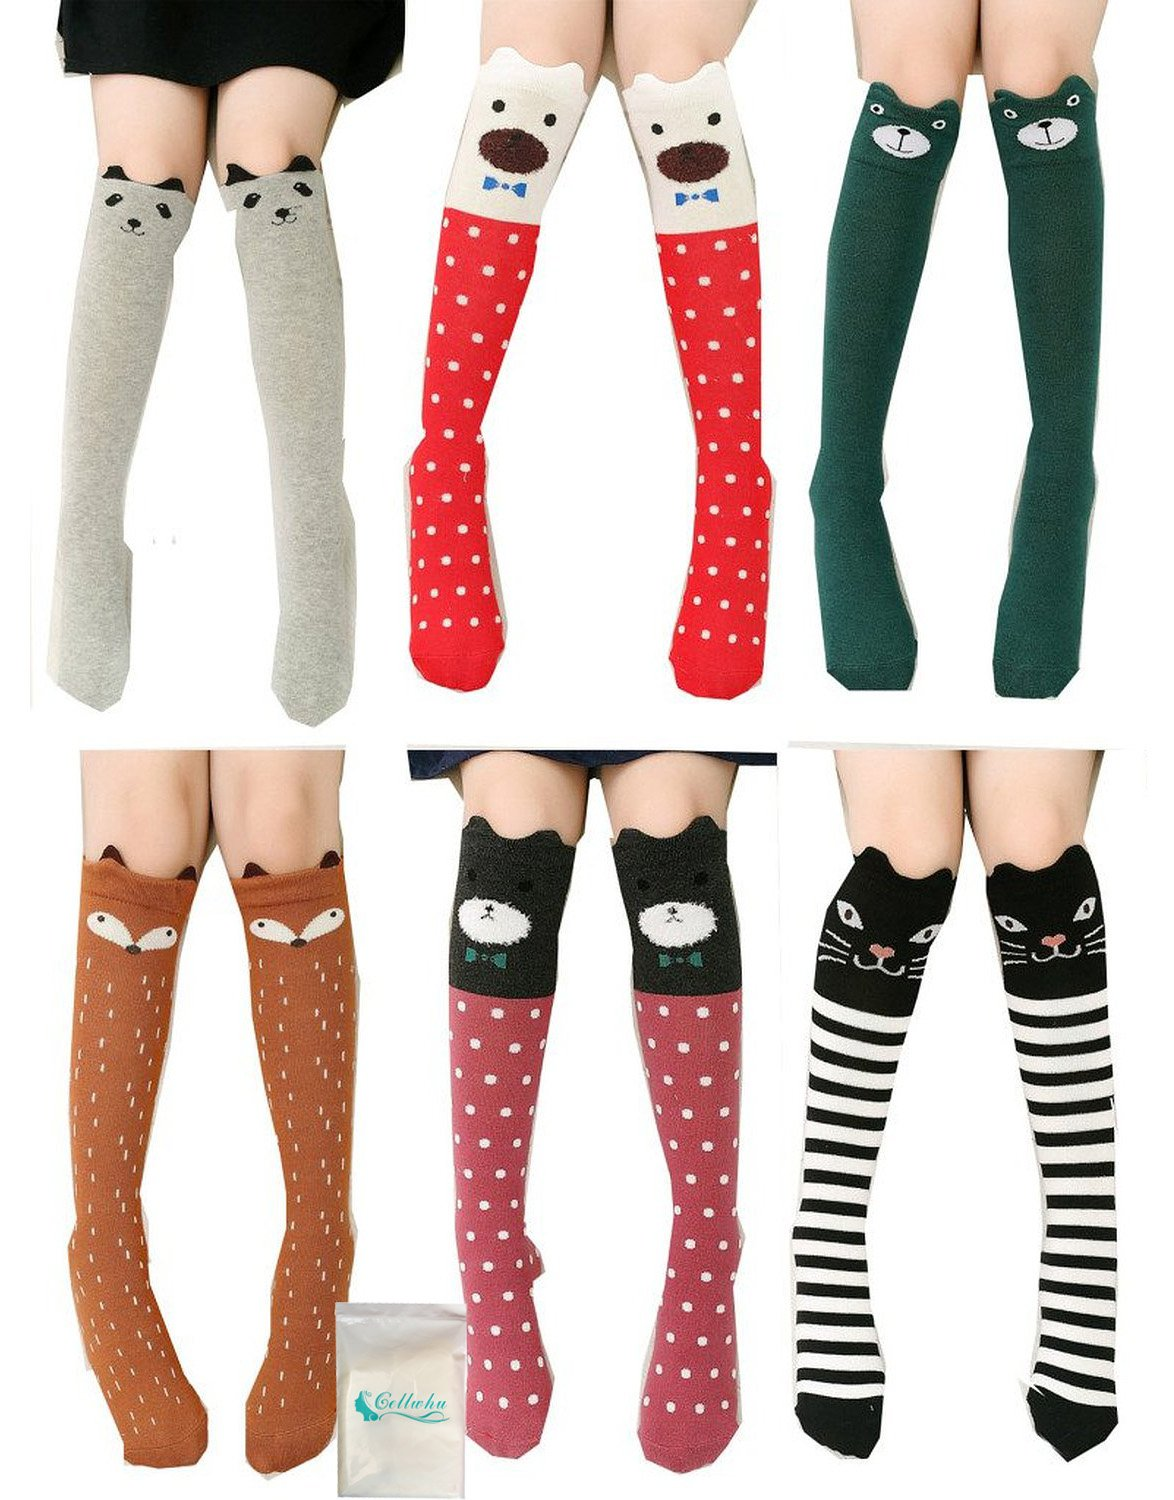 Girls Socks, Gellwhu 6/8 Pairs Cotton Over Calf Knee High Socks Animal Cat Fox Socks (6 Colors)